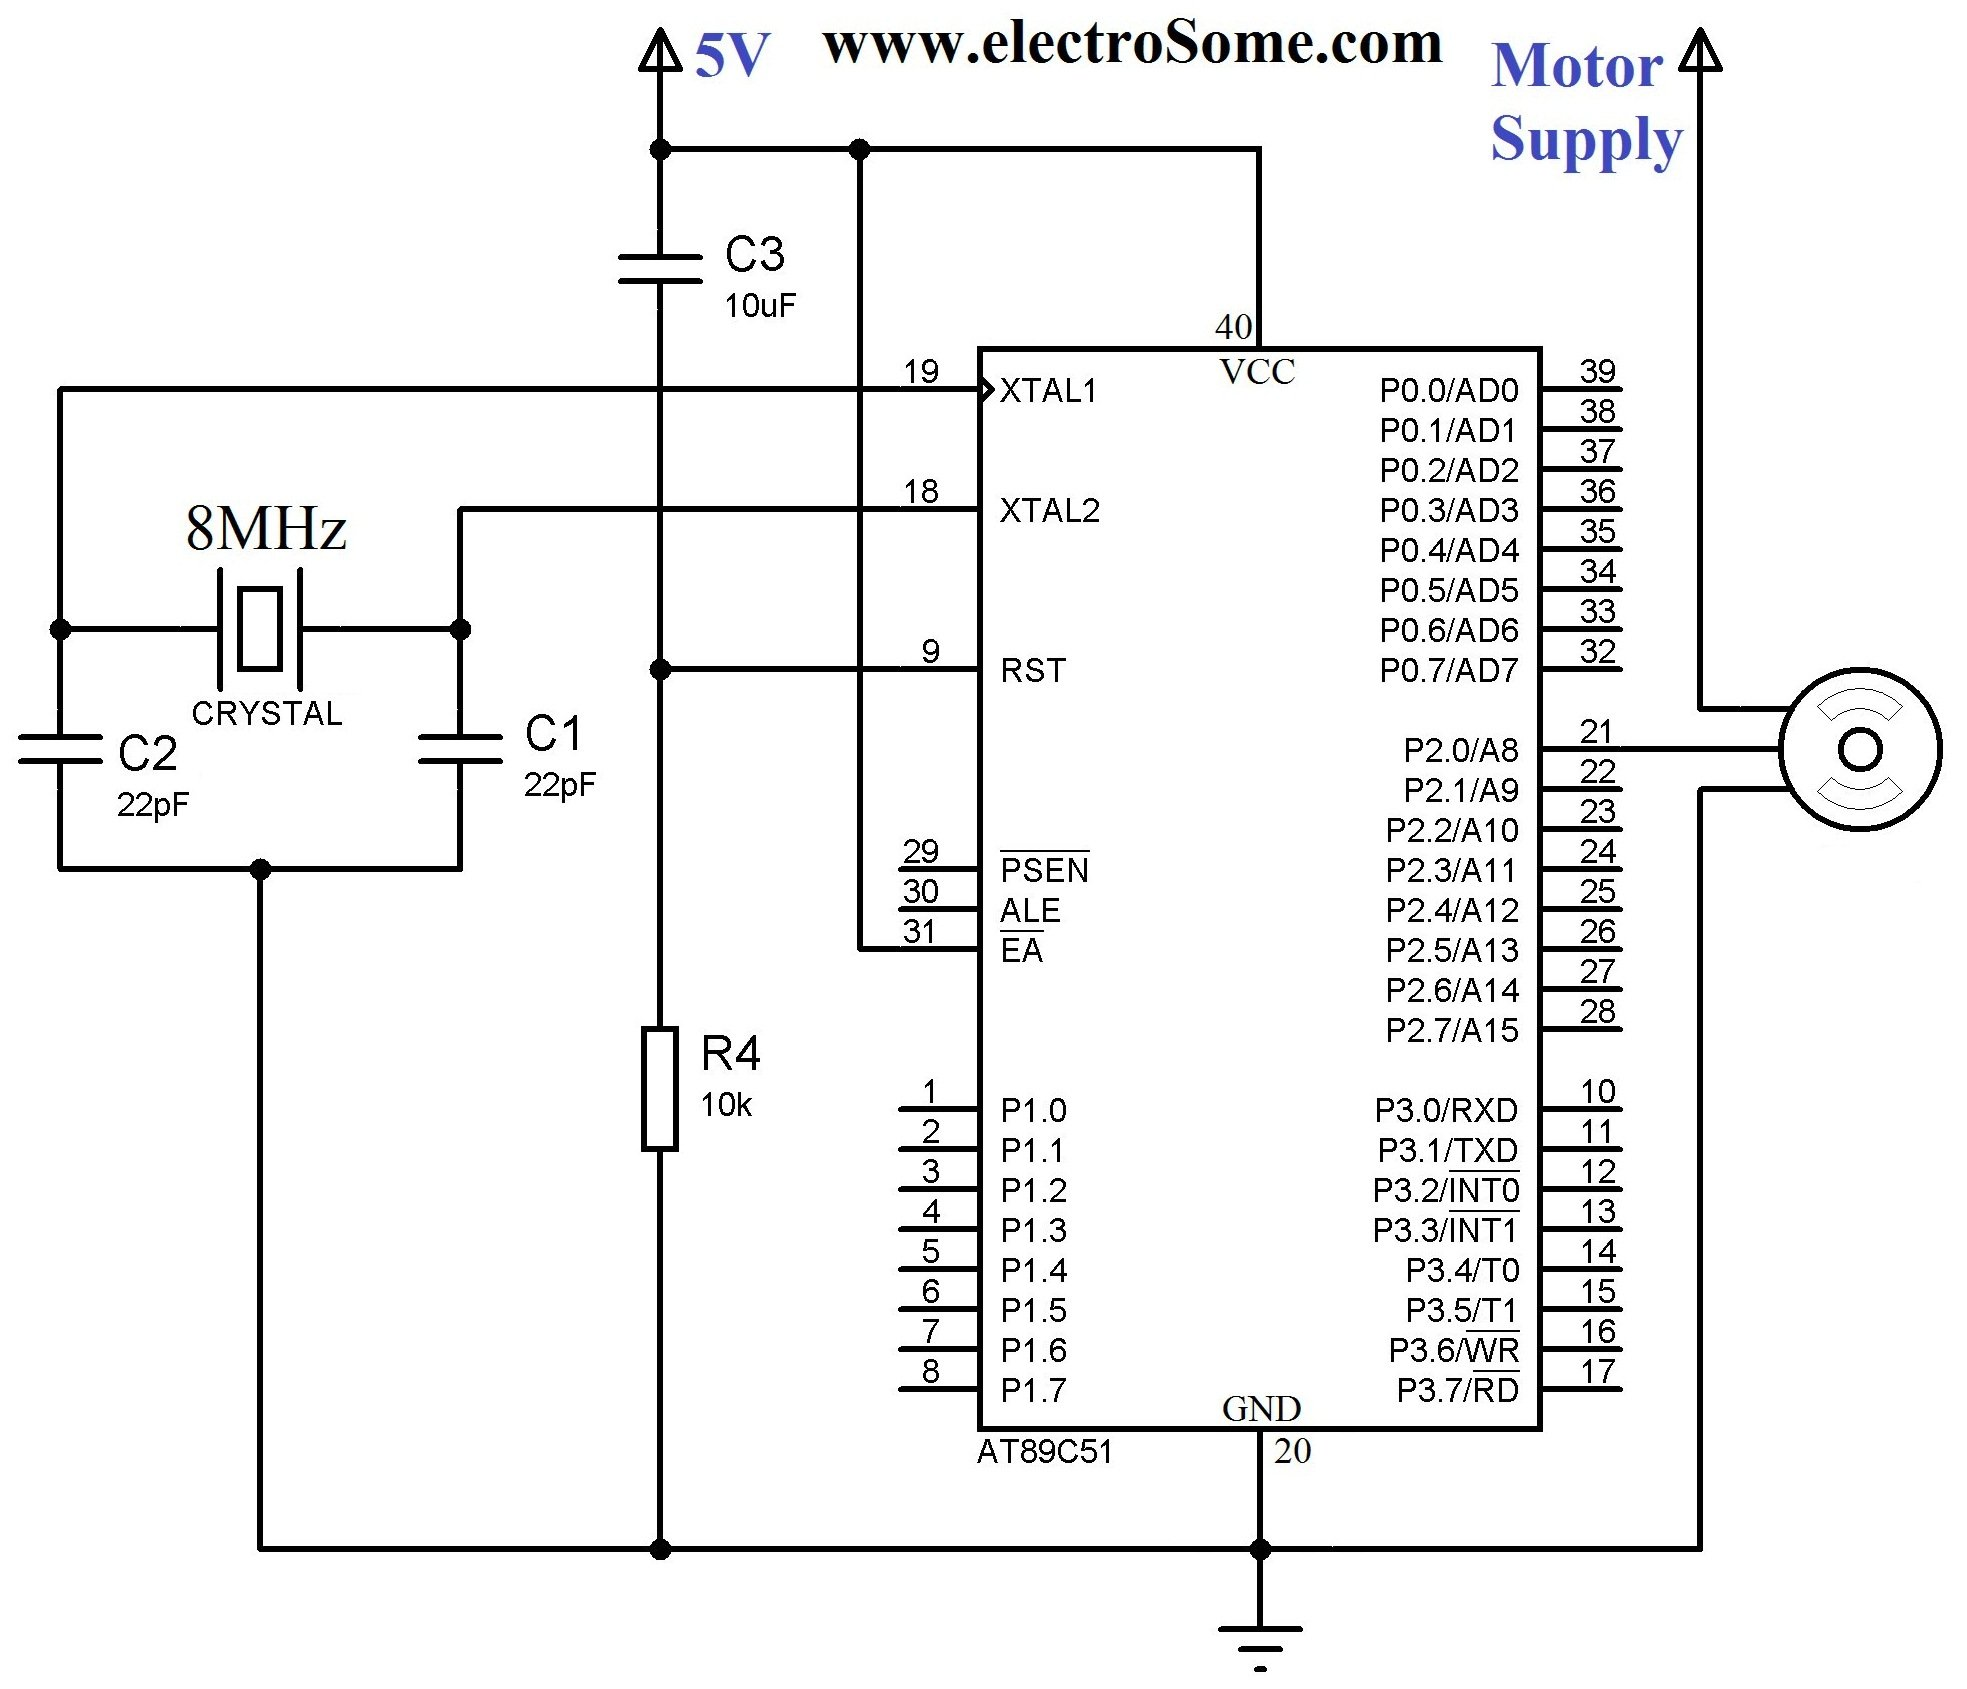 Interfacing Servo Motor With 8051 Microcontroller Using Keil C At89c51 Stepper Controller Circuit Diagram And Instructions